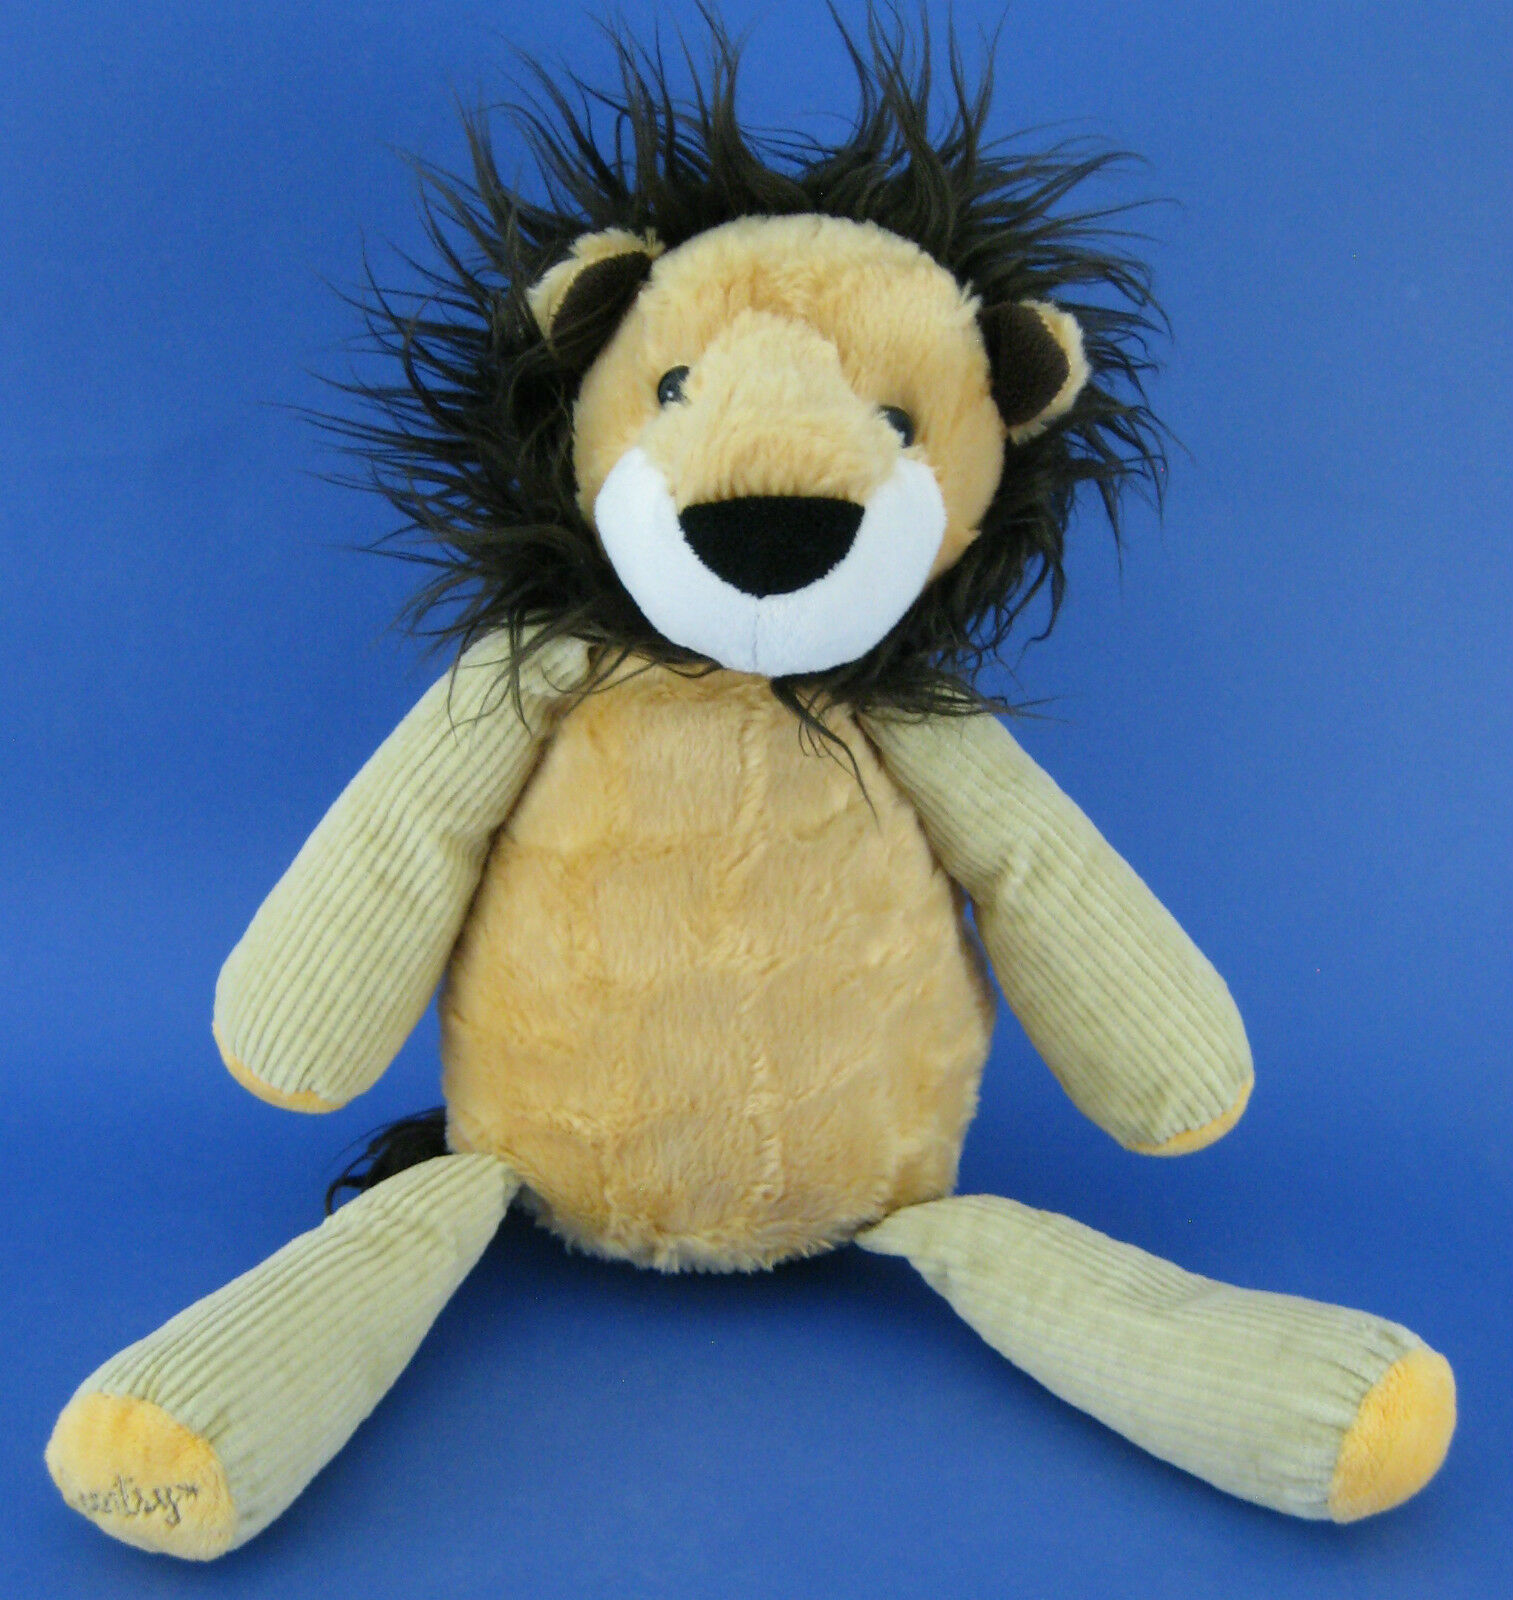 Scentsy Buddy Roarbert Lion Plush Stuffed Animal Fragrance Scent